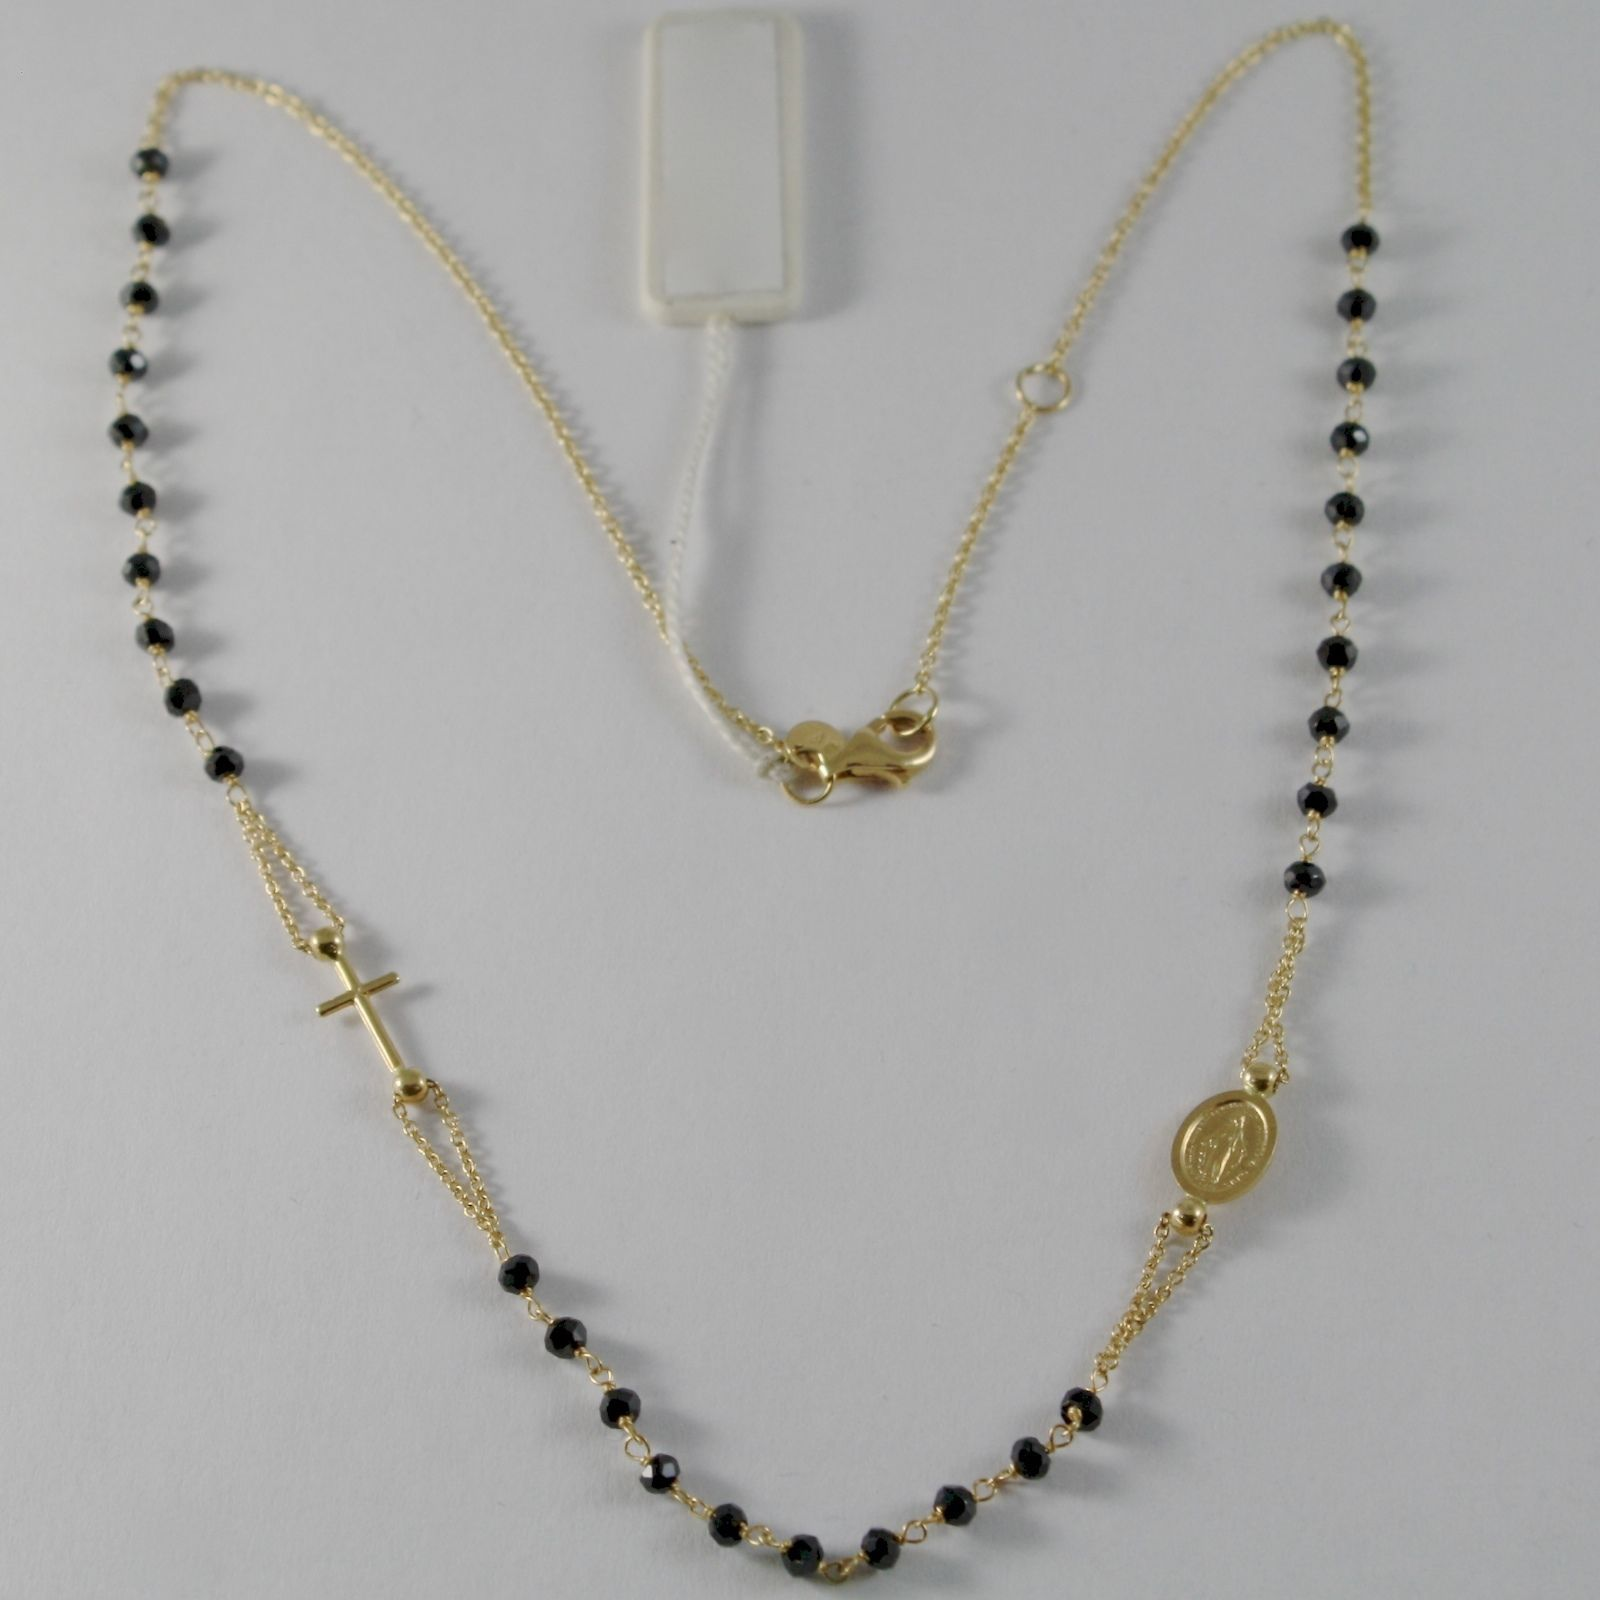 18K YELLOW GOLD ROSARY NECKLACE MIRACULOUS MEDAL & CROSS BLACK SPINEL ITALY MADE